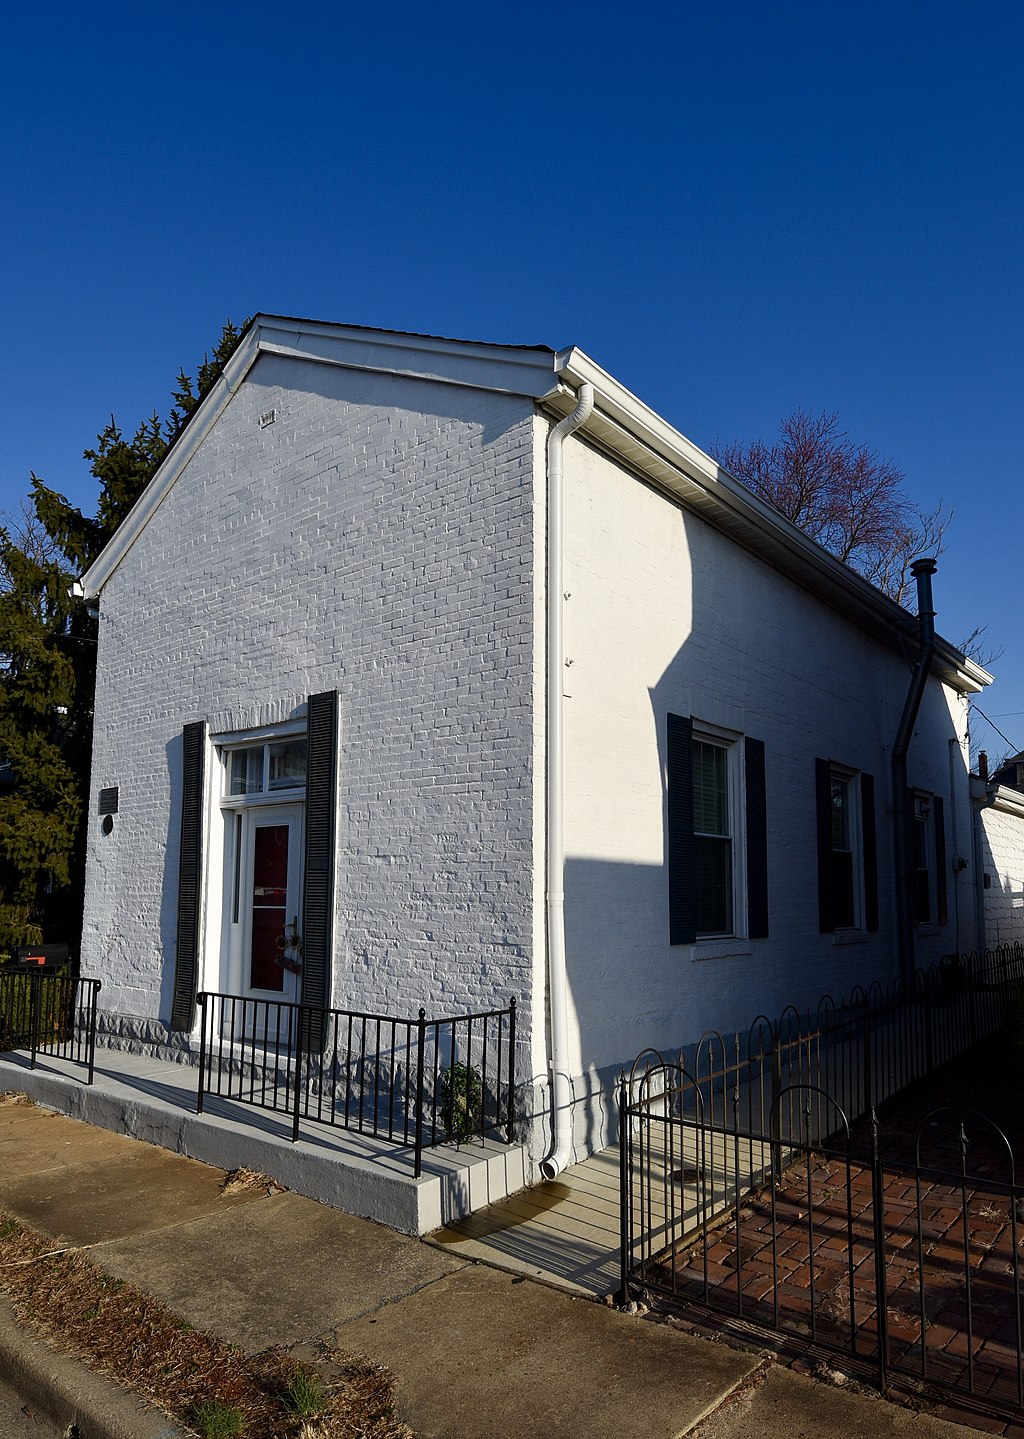 The historic African Church building was built around 1855 by slaves and served as the first house of worship for the St. John African Methodist Episcopal Church congregation.